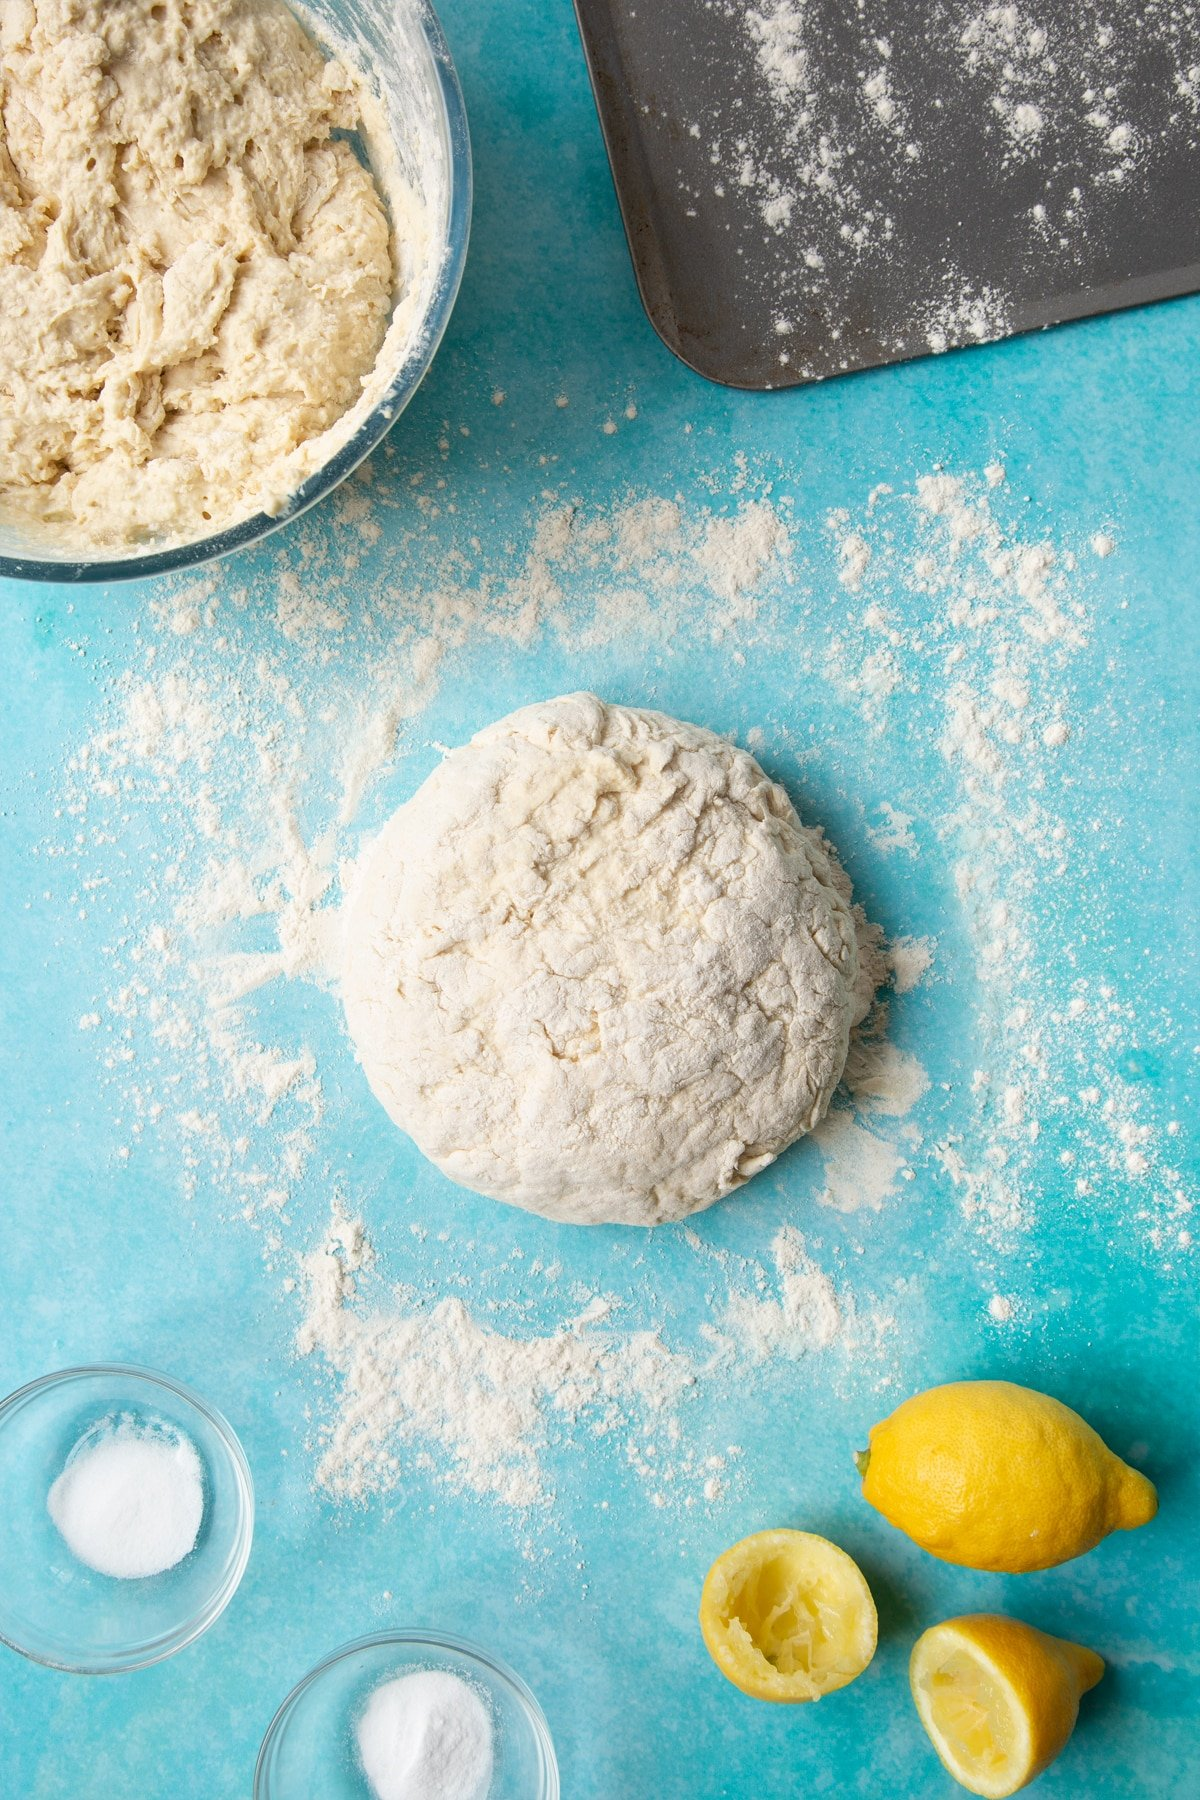 A shaped soda bread dough on a floured surface surrounded by ingredients to make vegan soda bread.